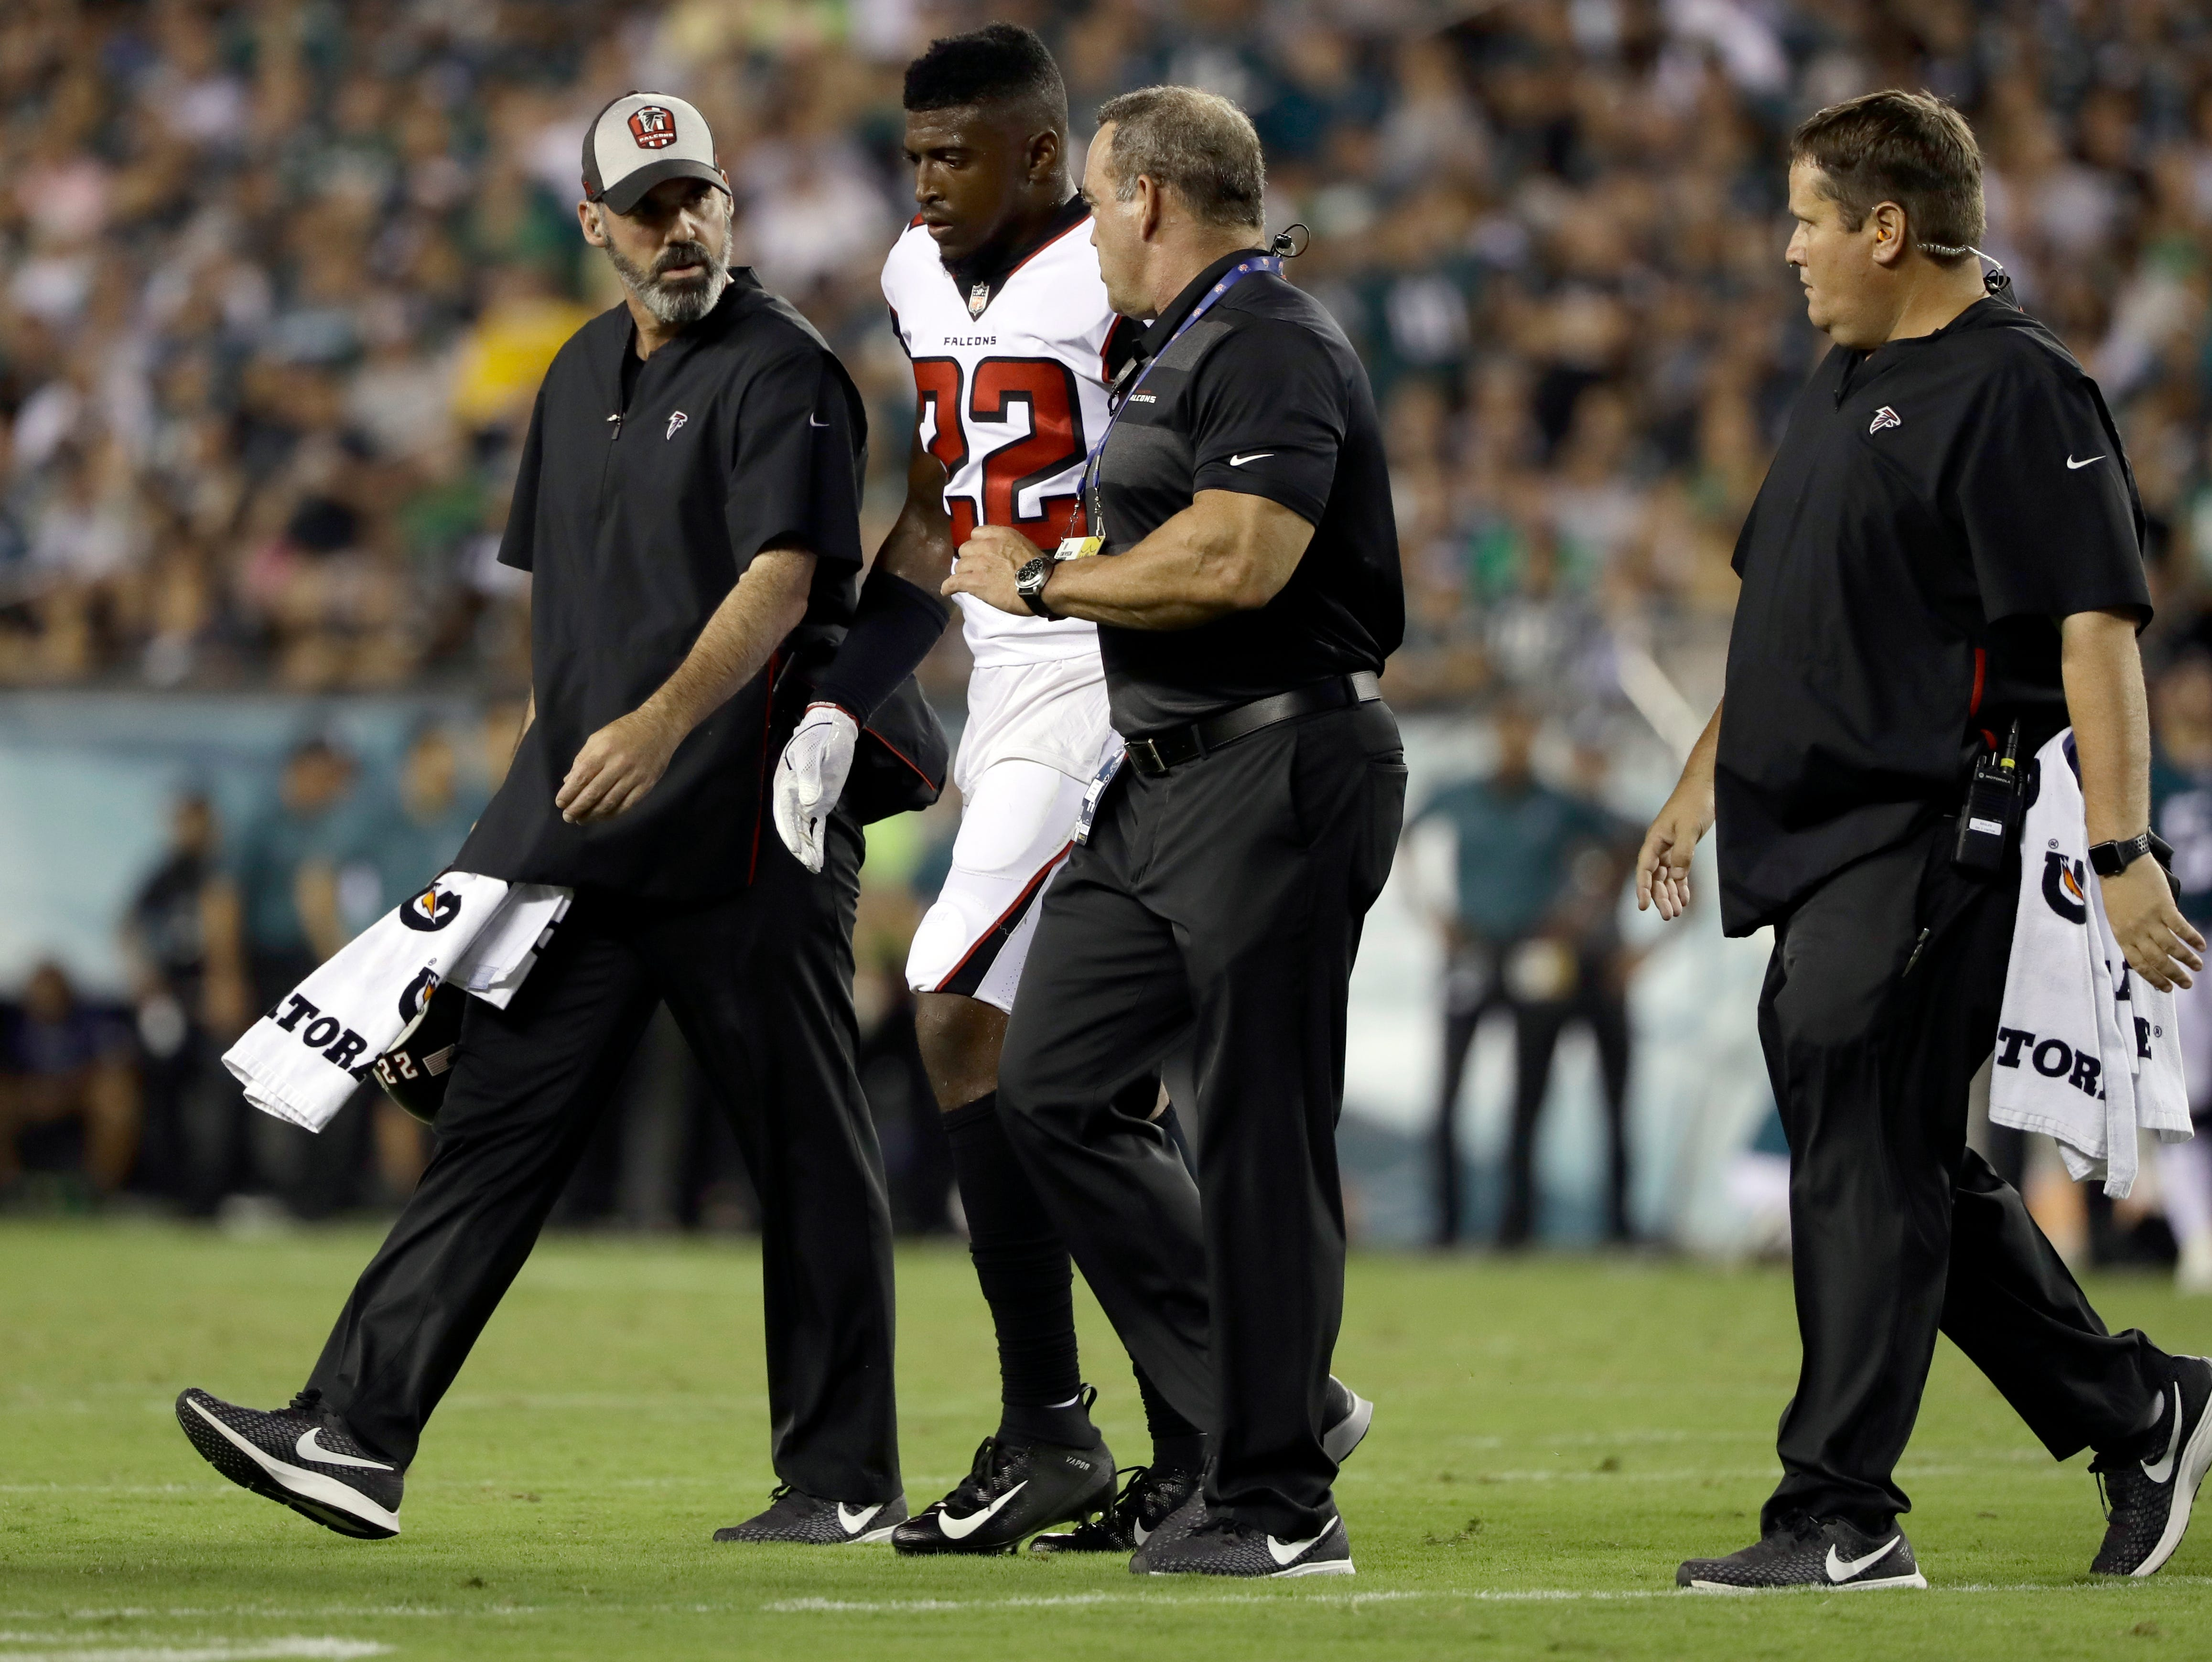 Keanu Neal, S, Falcons (torn ACL, out for season)